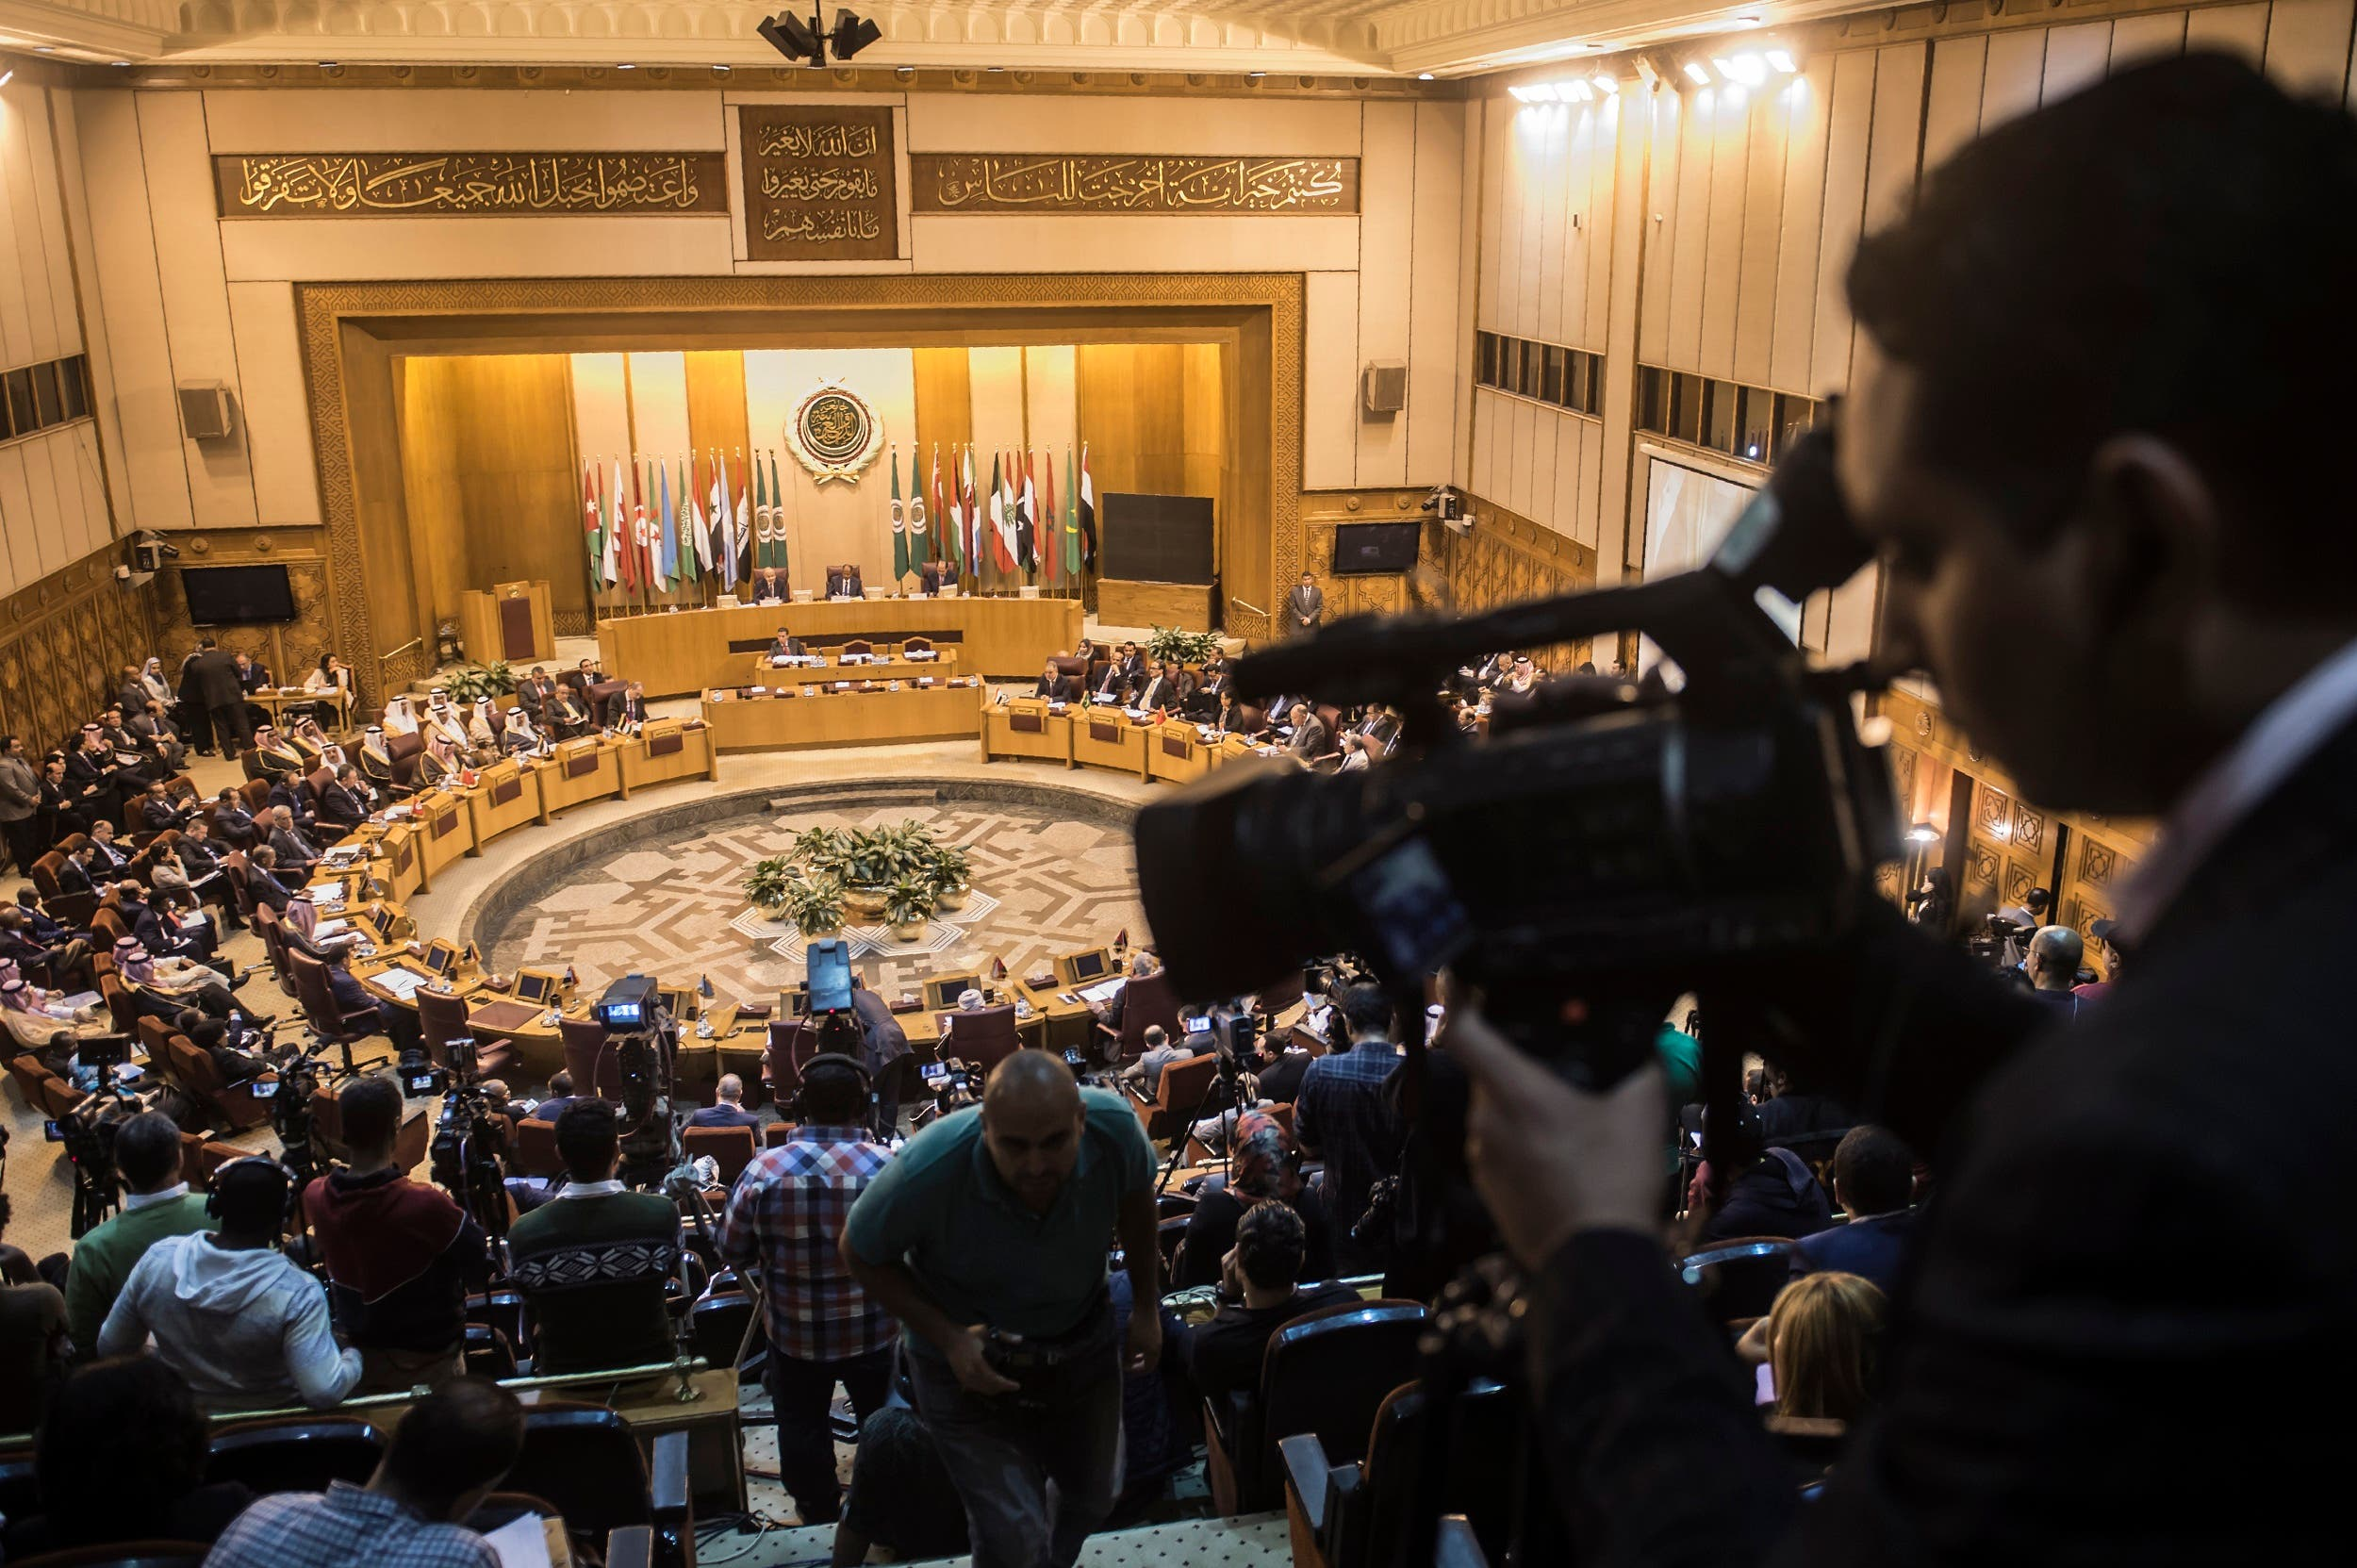 A view of the Arab League headquarters during a meeting in Cairo on November 19, 2017. (AFP)